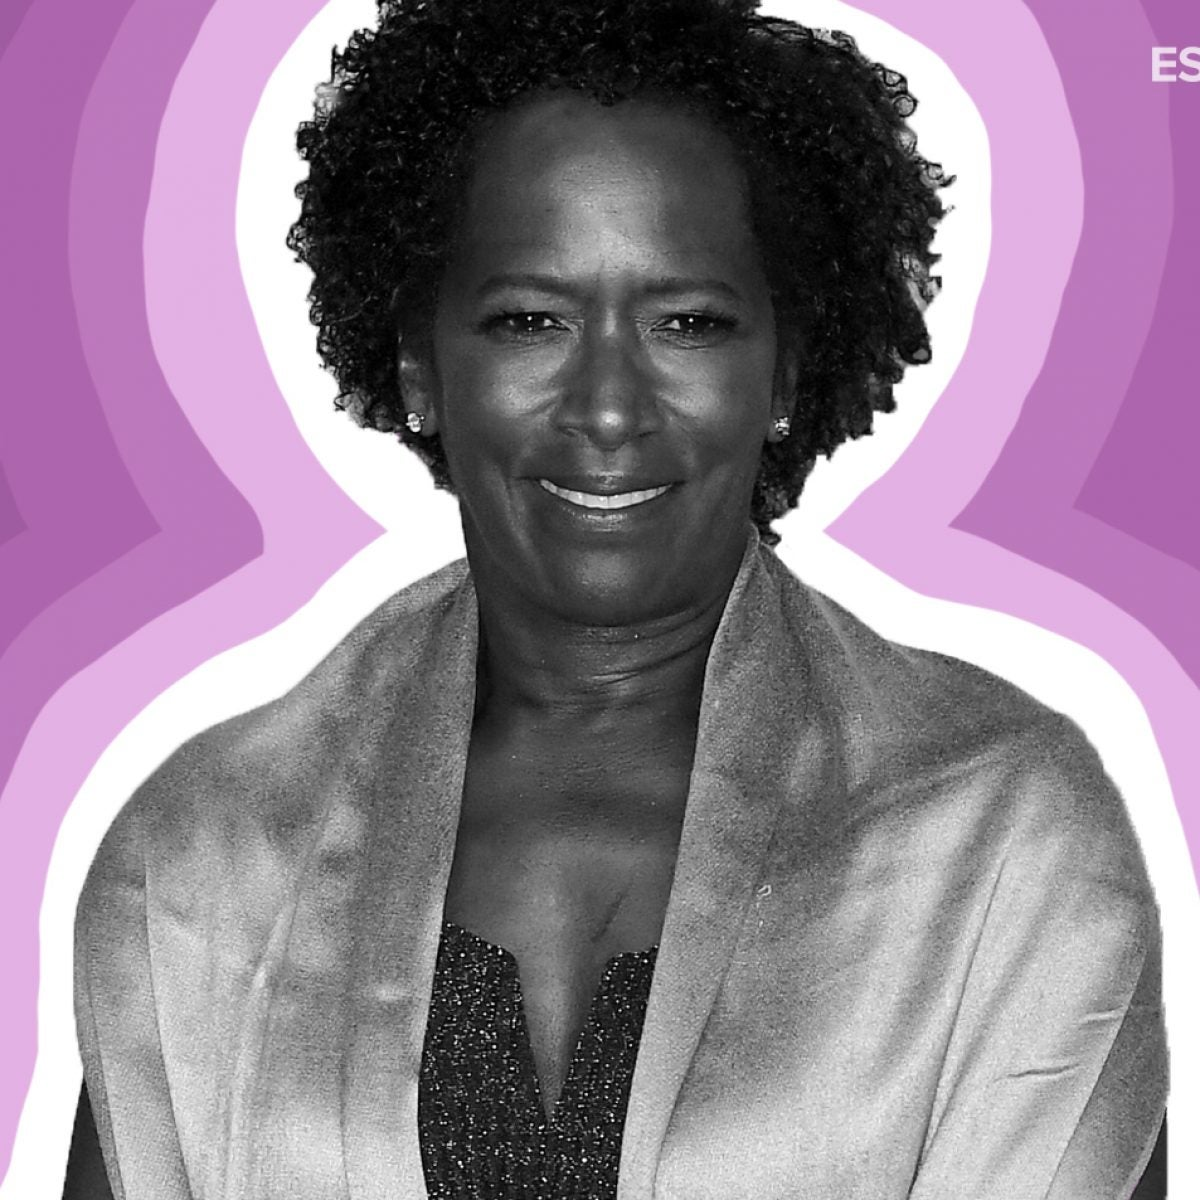 Emmys 2020: Victoria Thomas Is The Woman Behind Some of Your Favorite Series and Films